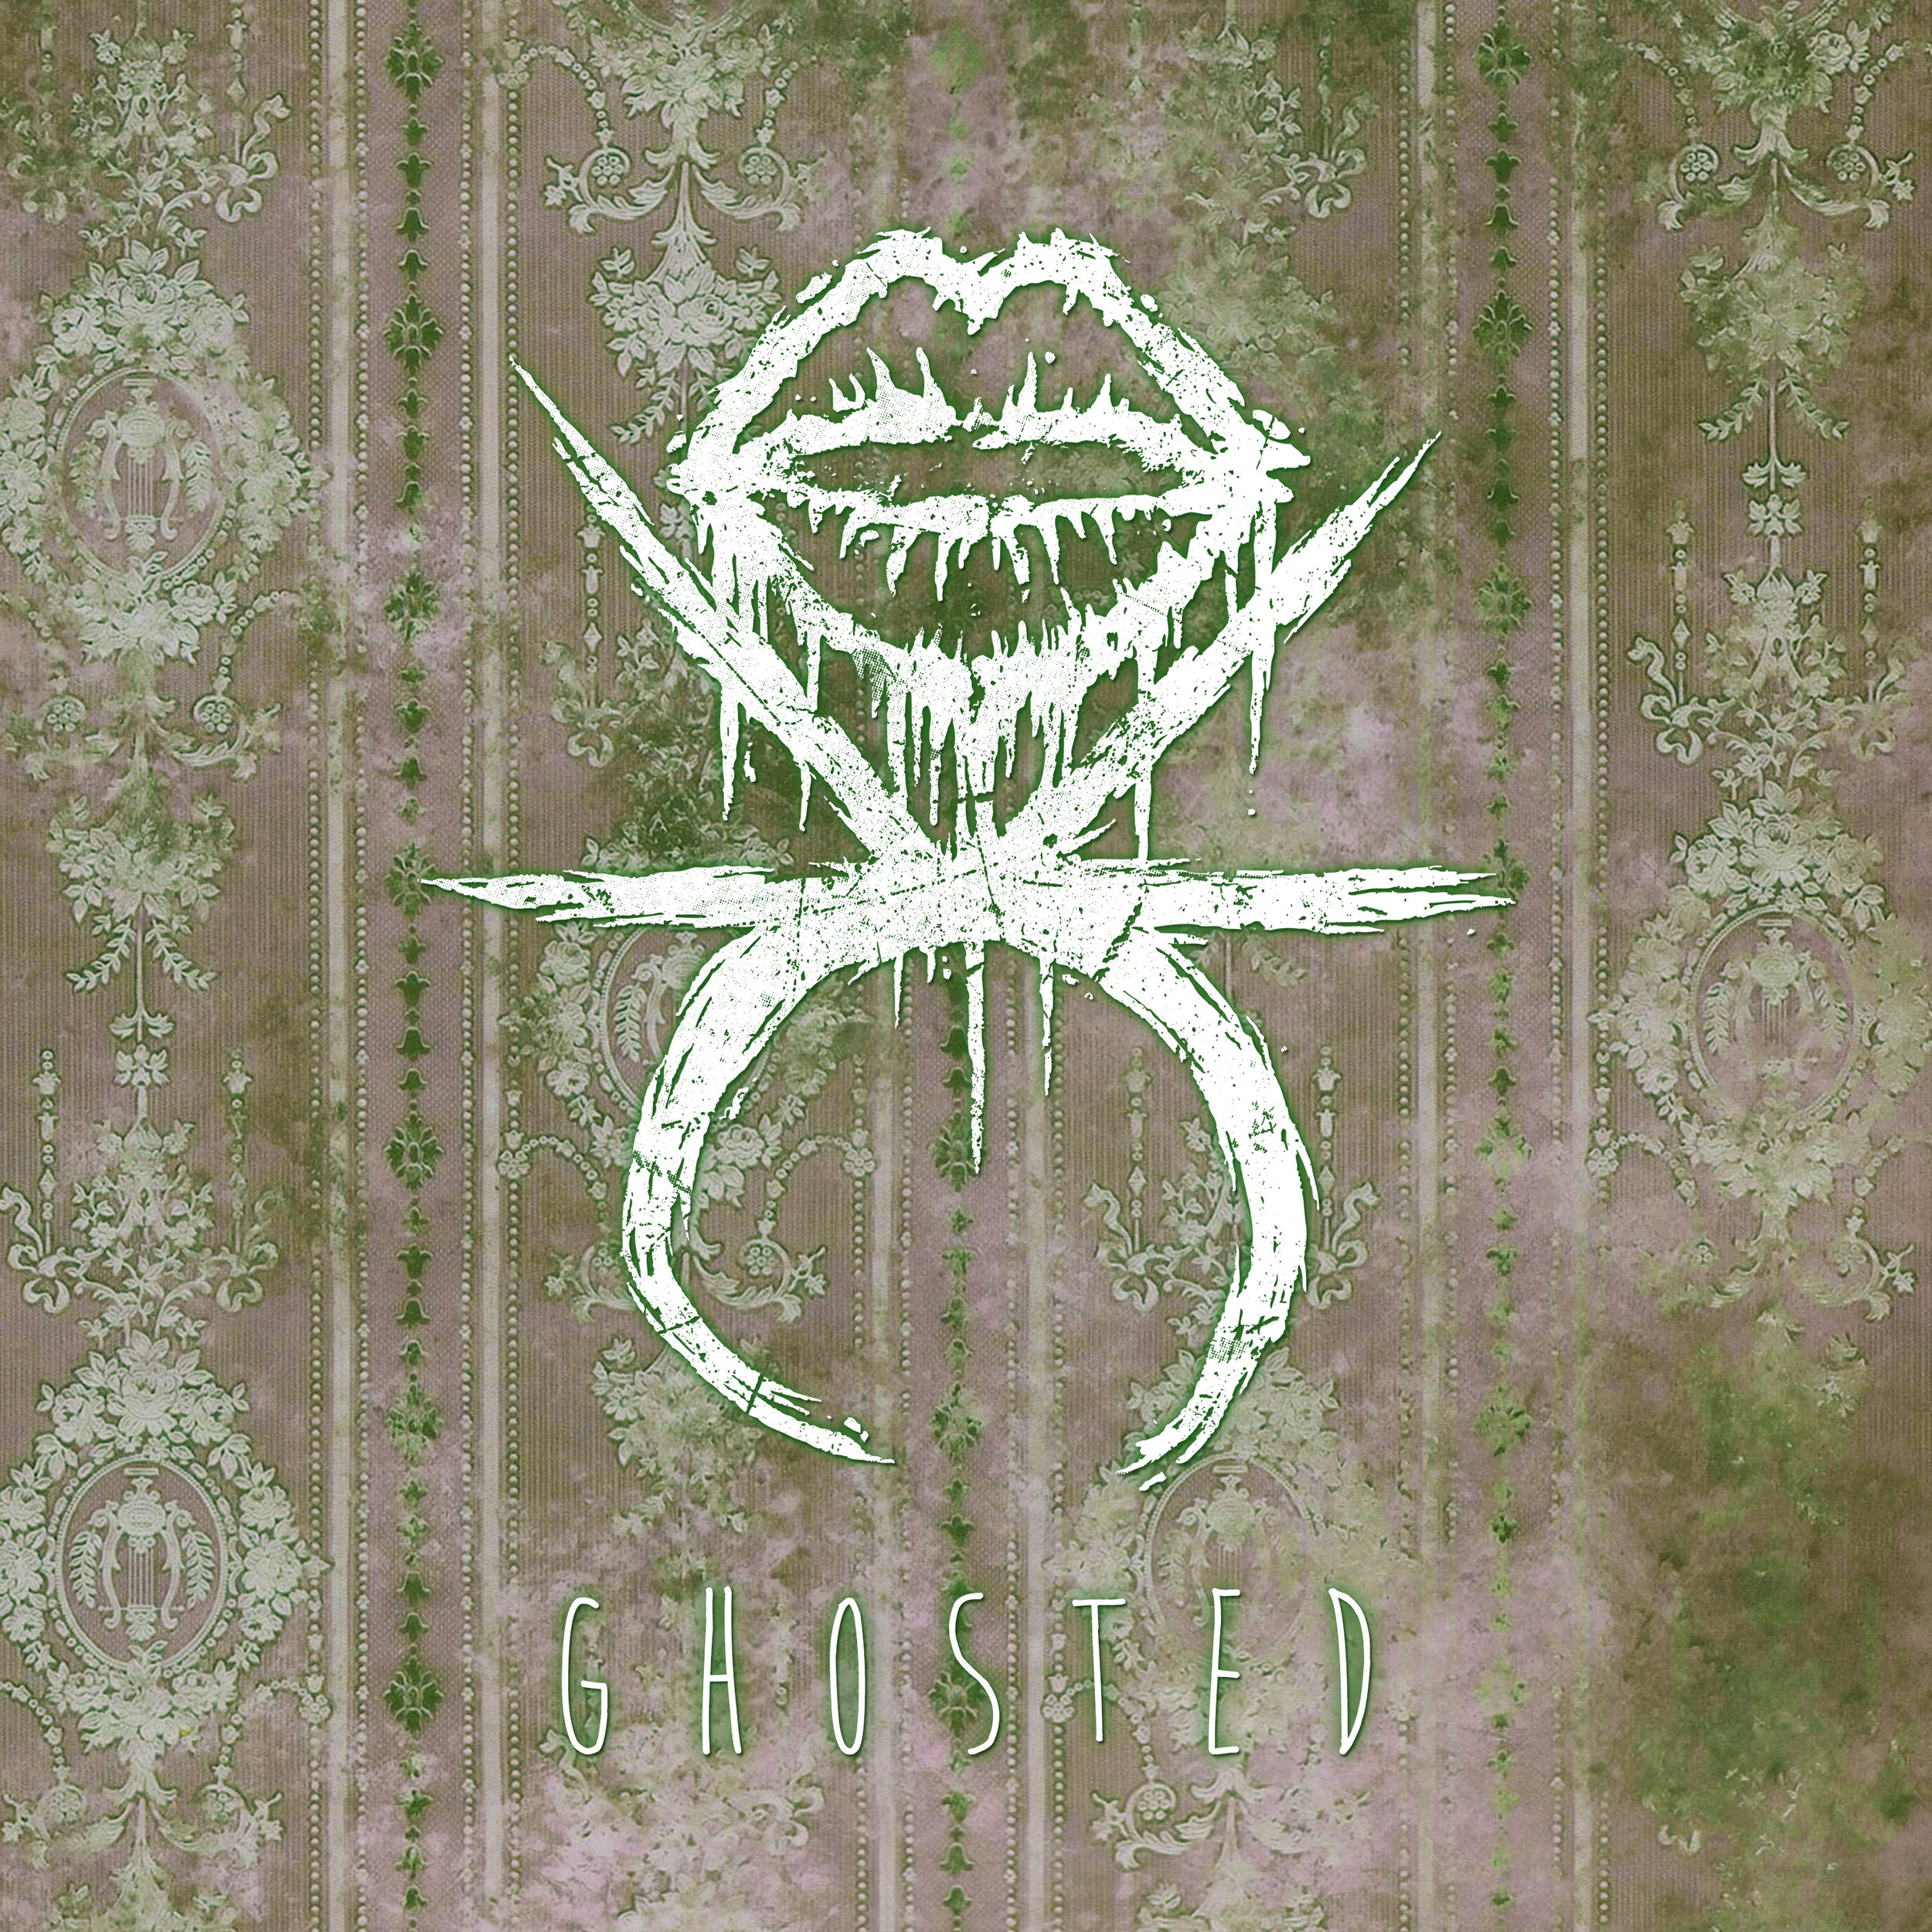 Ghosted - Single (2015 Victory Records)